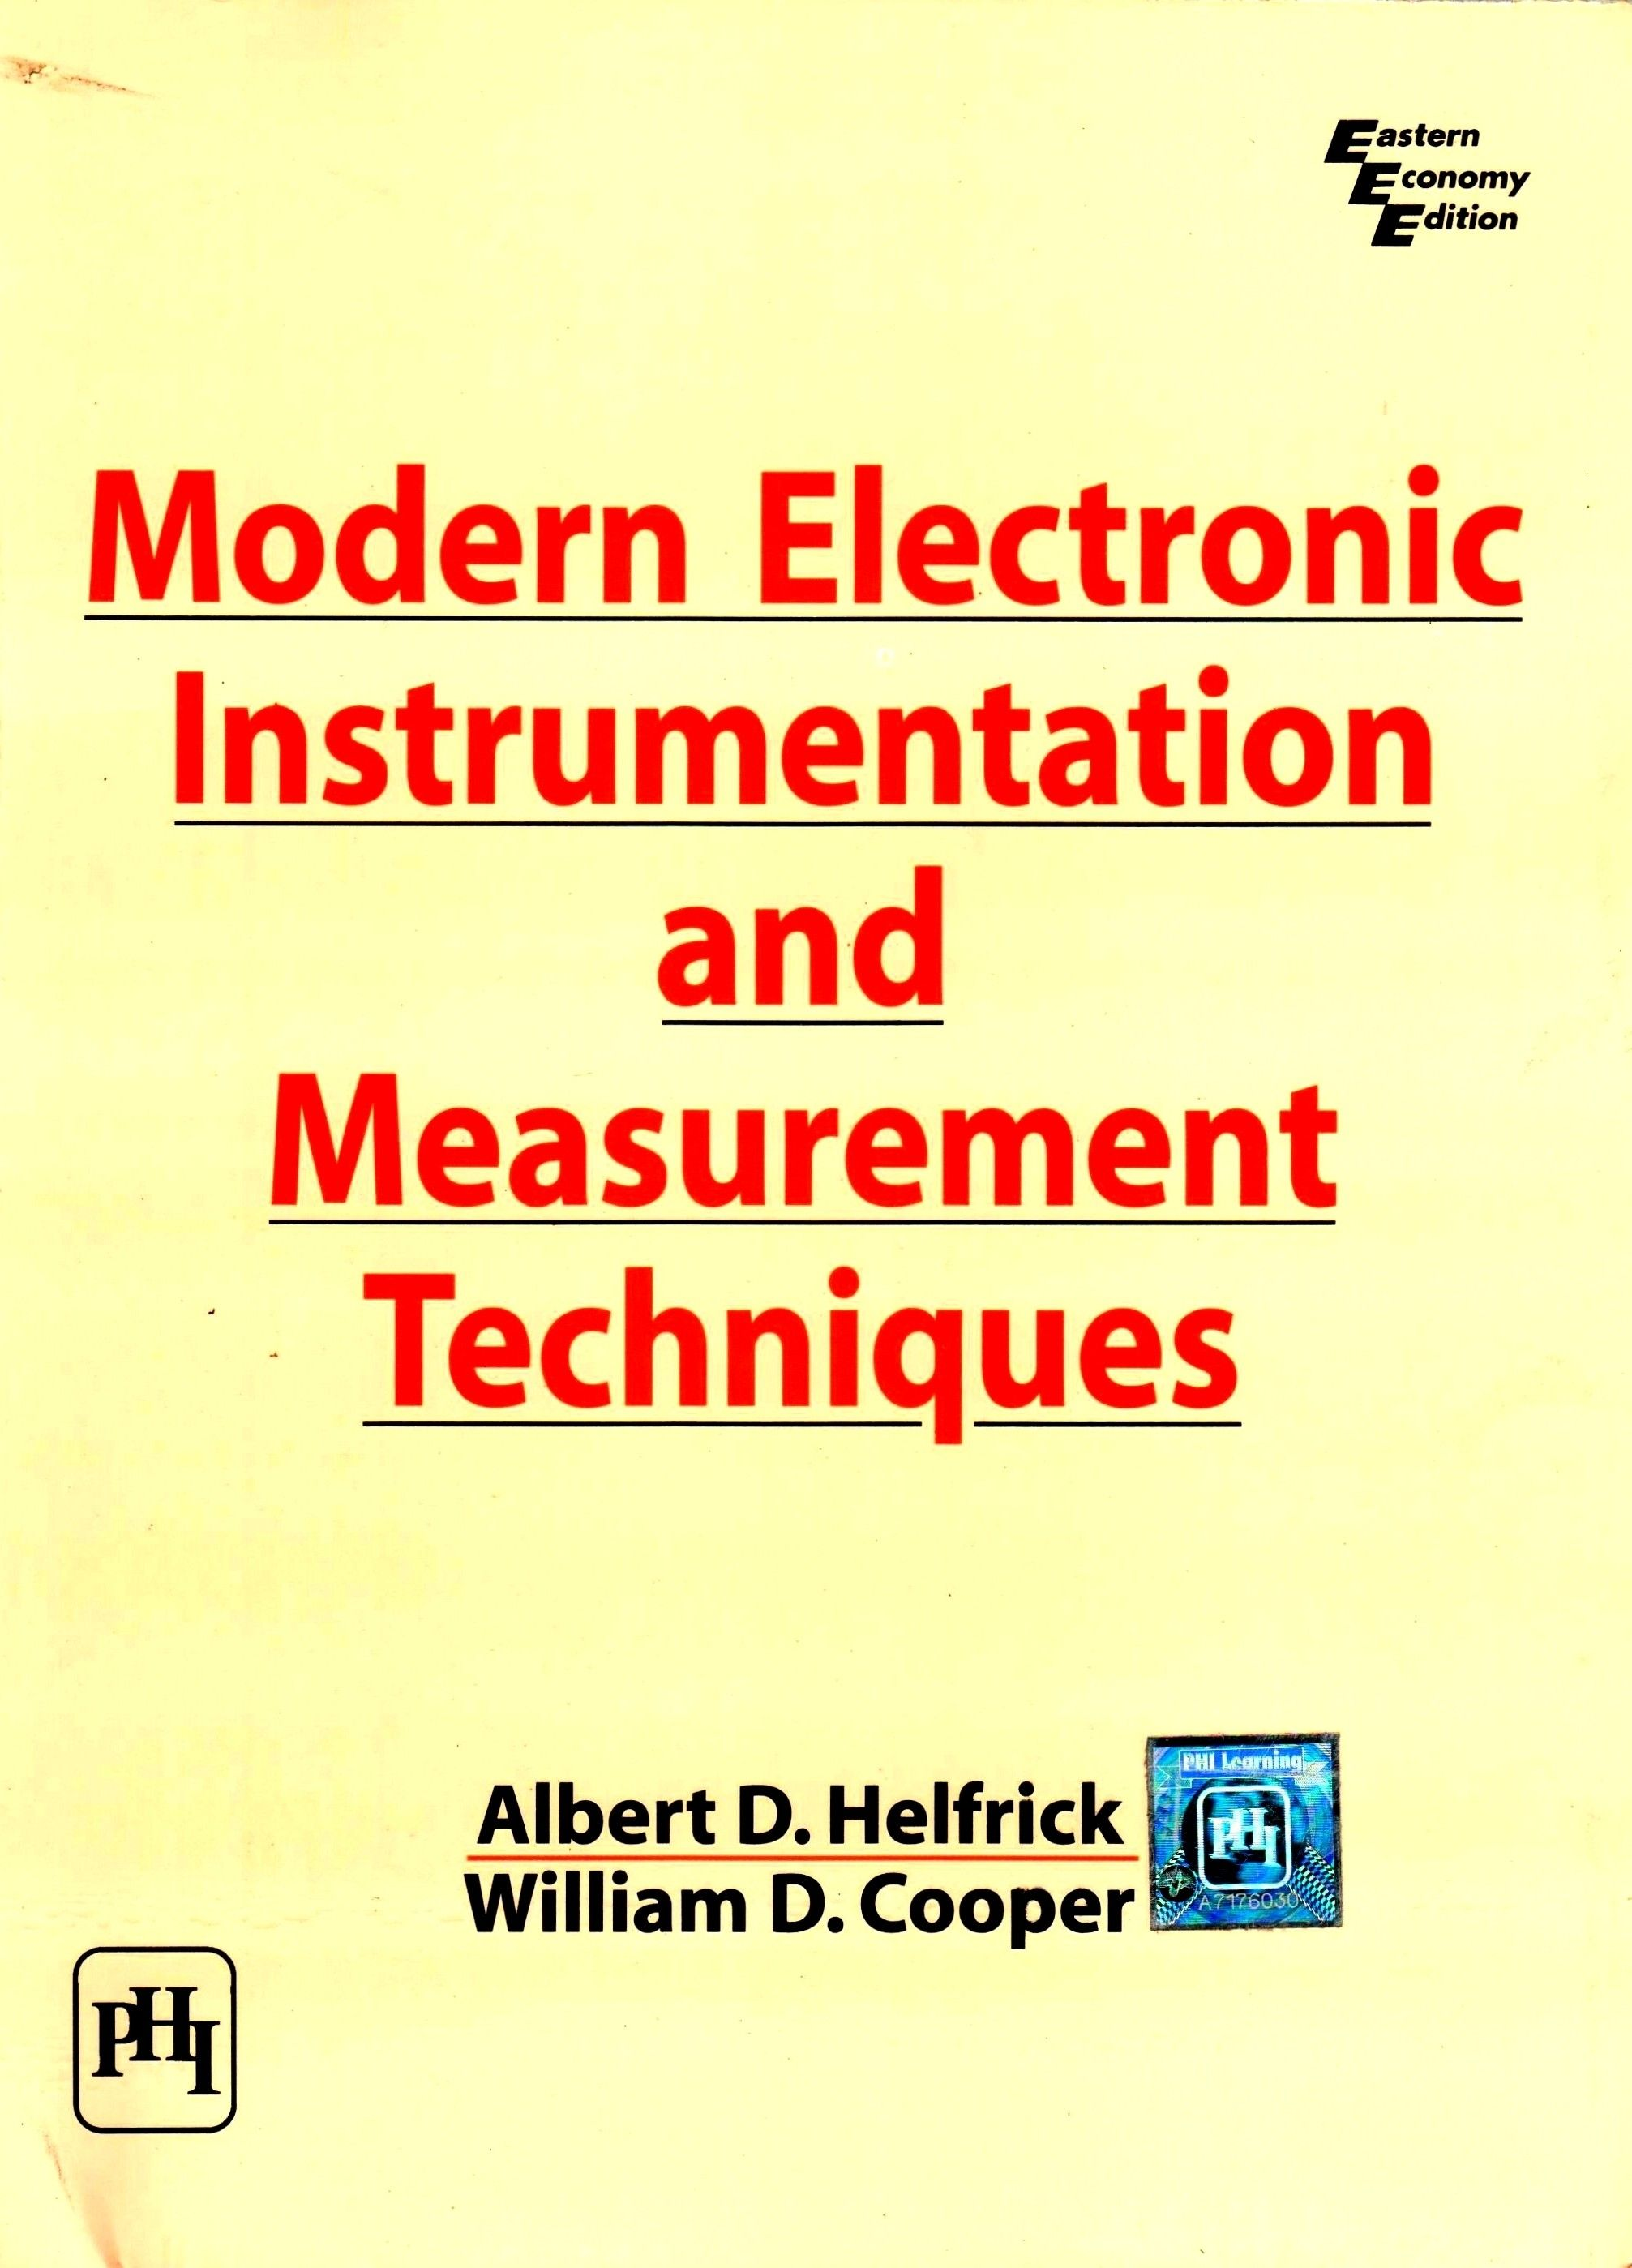 Modern electronic instrumentation and Measurement techniques b y Albert  D.Helfrick & William D.Cooper Price: Rs.120 Free delivery